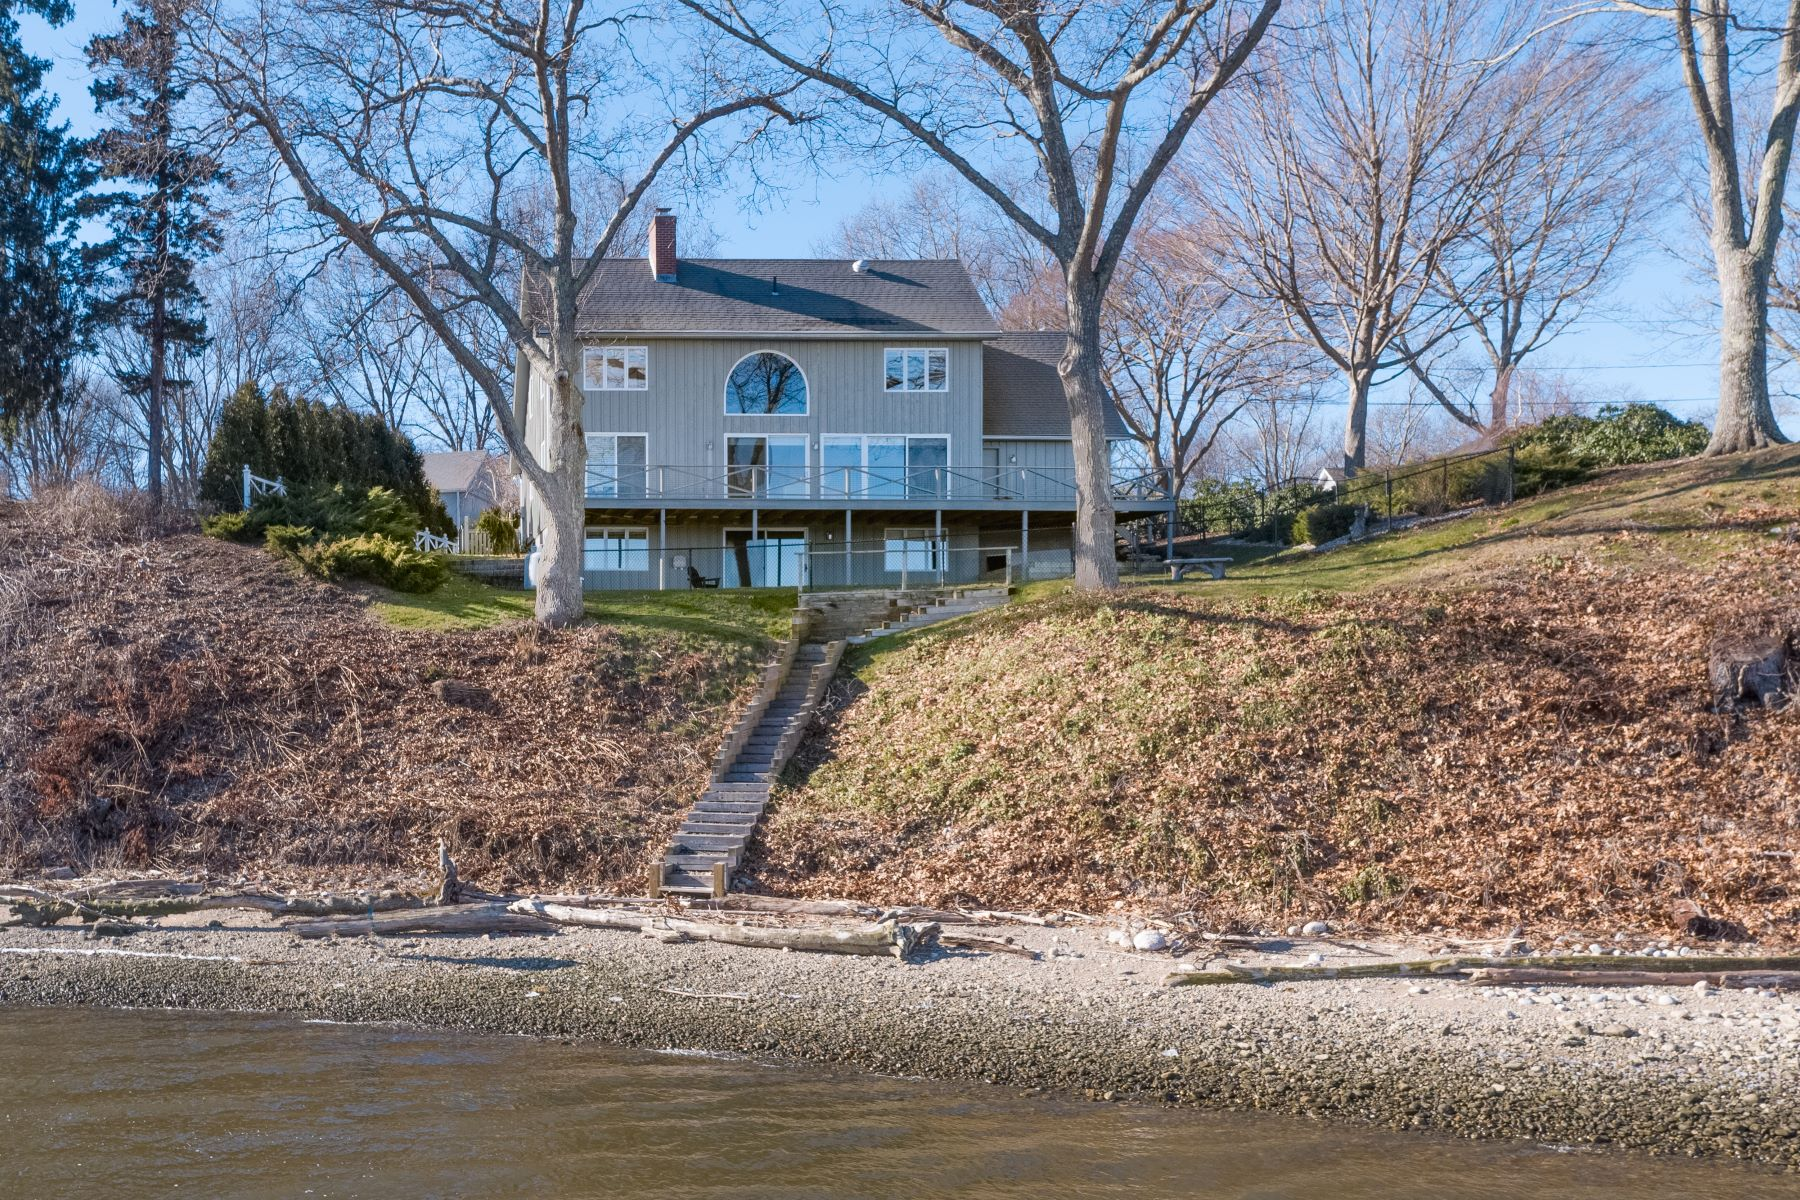 Single Family Homes for Sale at Ct. River Waterfront Cape 30 Riverside Avenue Old Saybrook, Connecticut 06475 United States